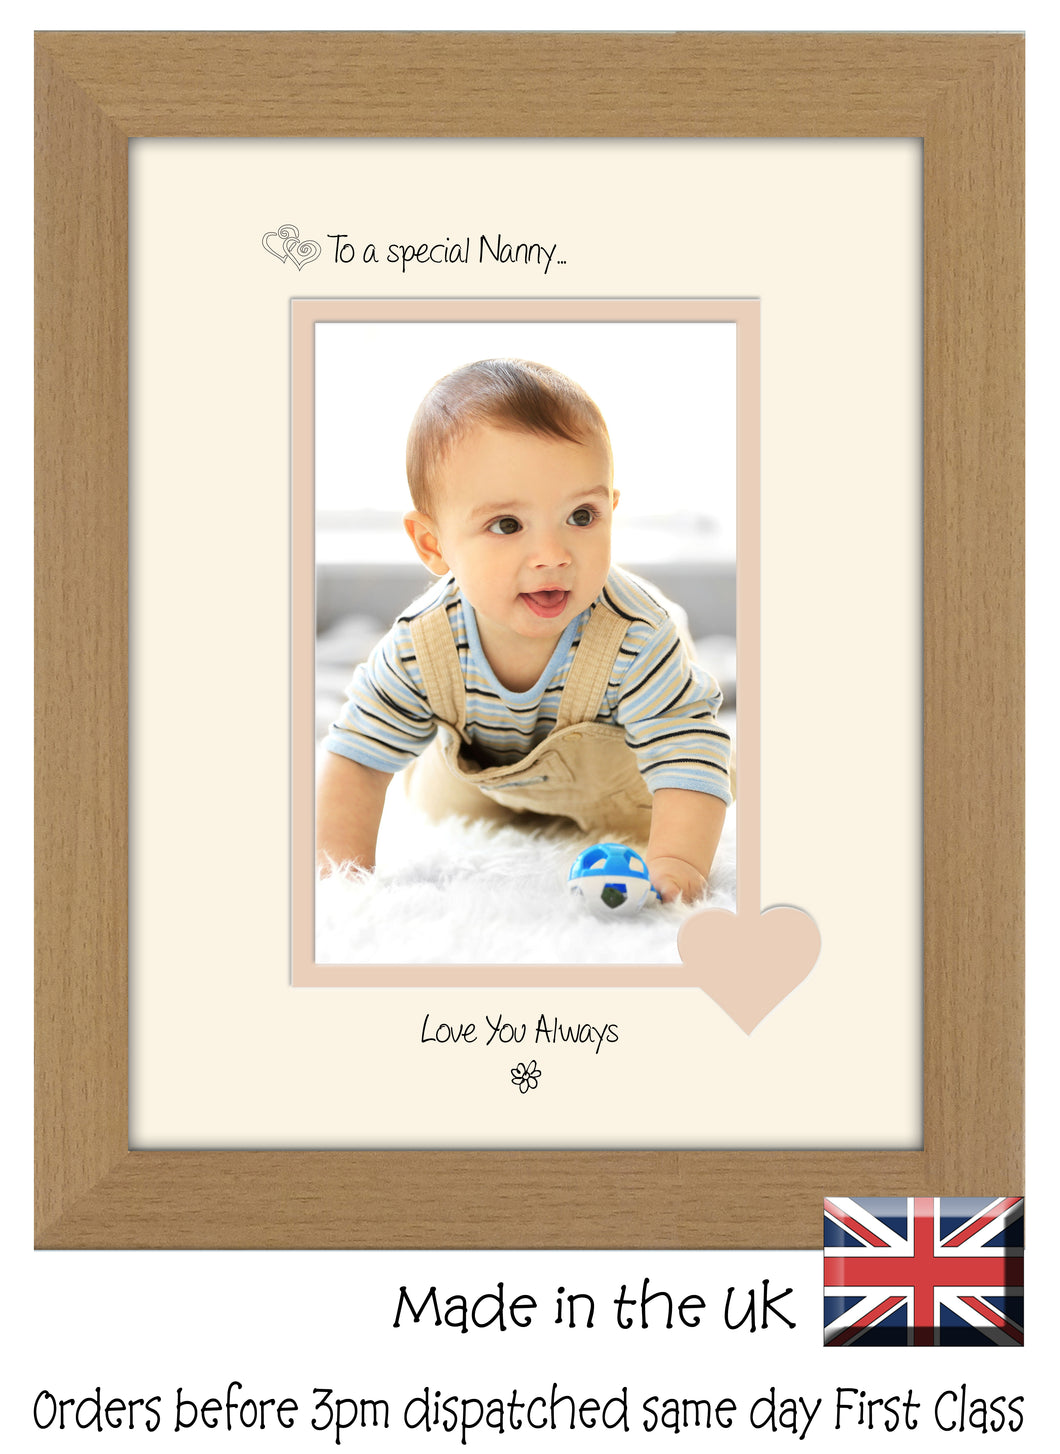 Nanny Photo Frame - To a Special Nanny... Love you Always Portrait photo frame 6